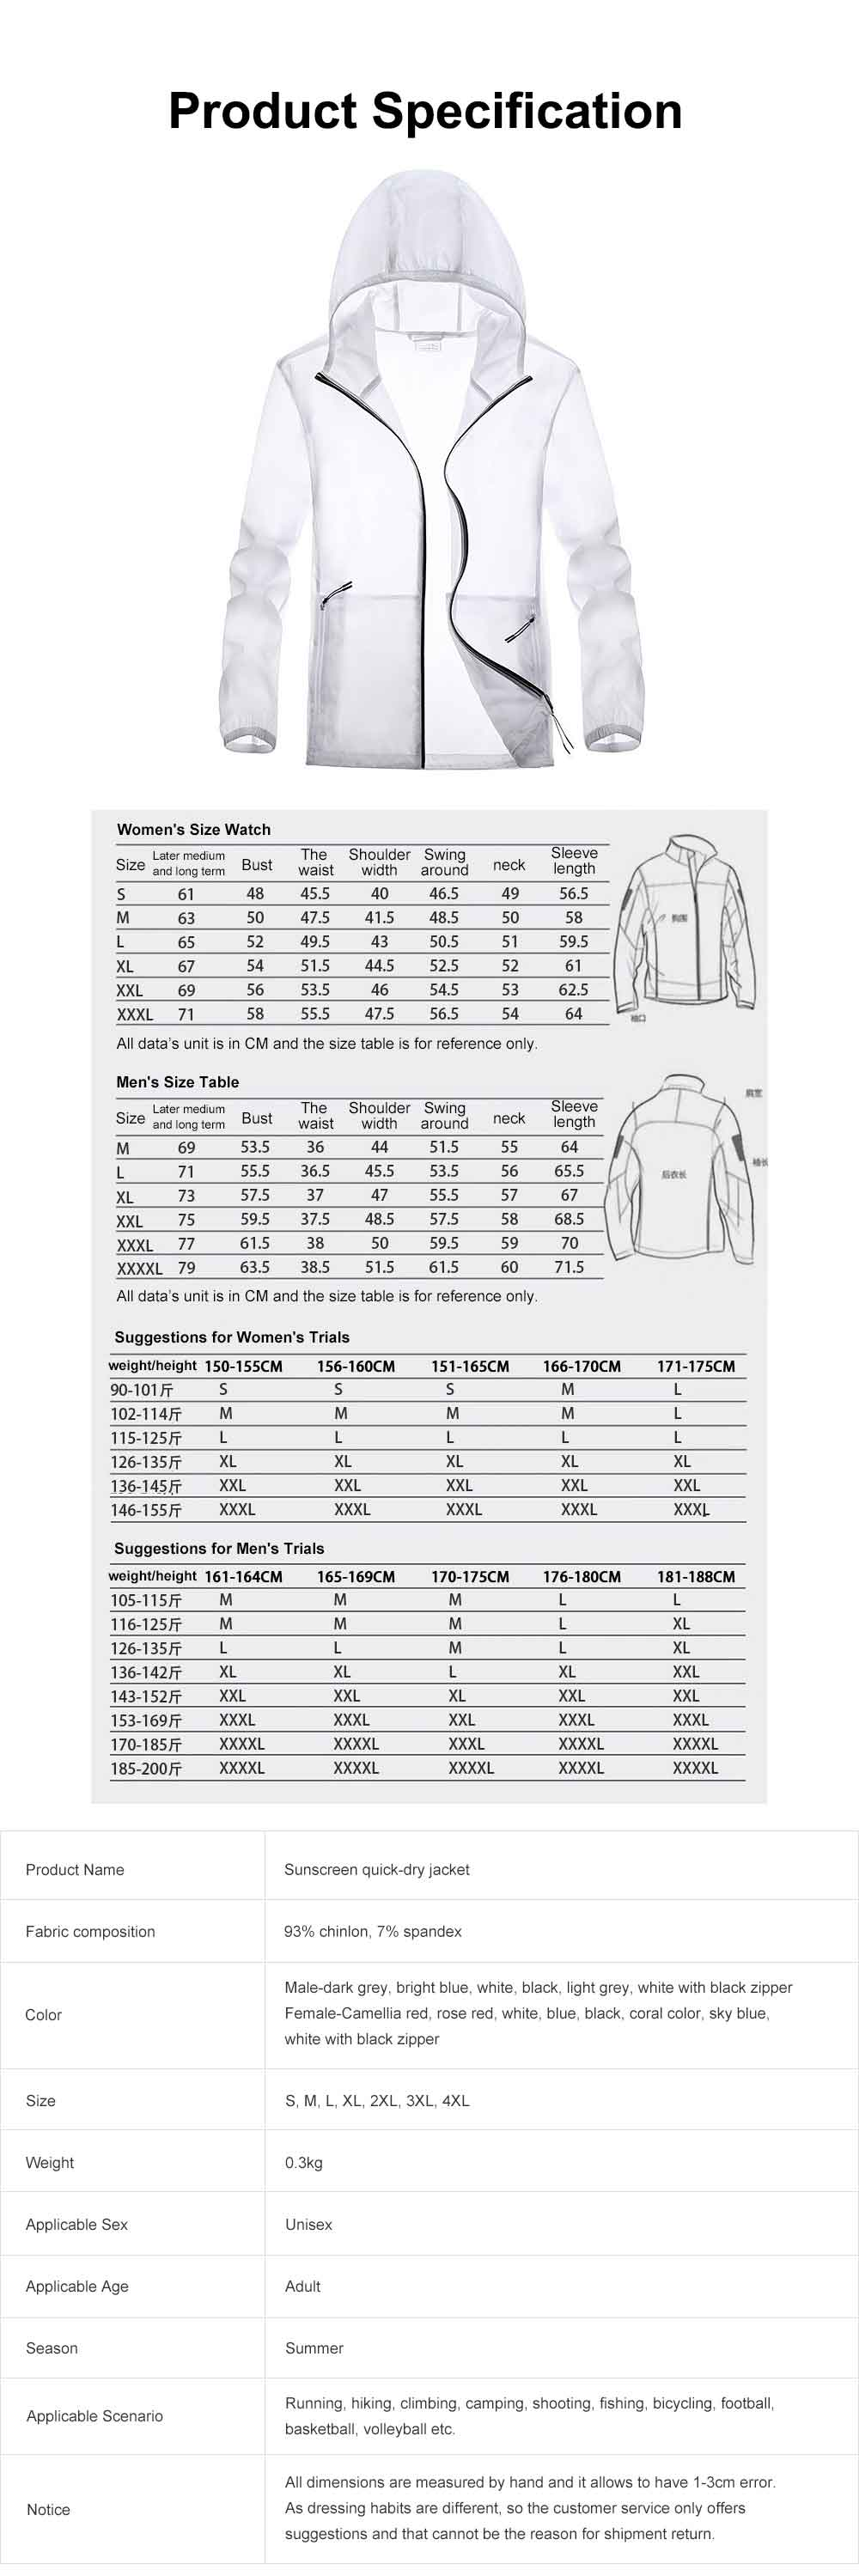 Couple Sunscreen Jacket for Lovers, Outdoor Sun Protective Skin Suit for Camping Running, Thin Quick Dry Clothing Top 7